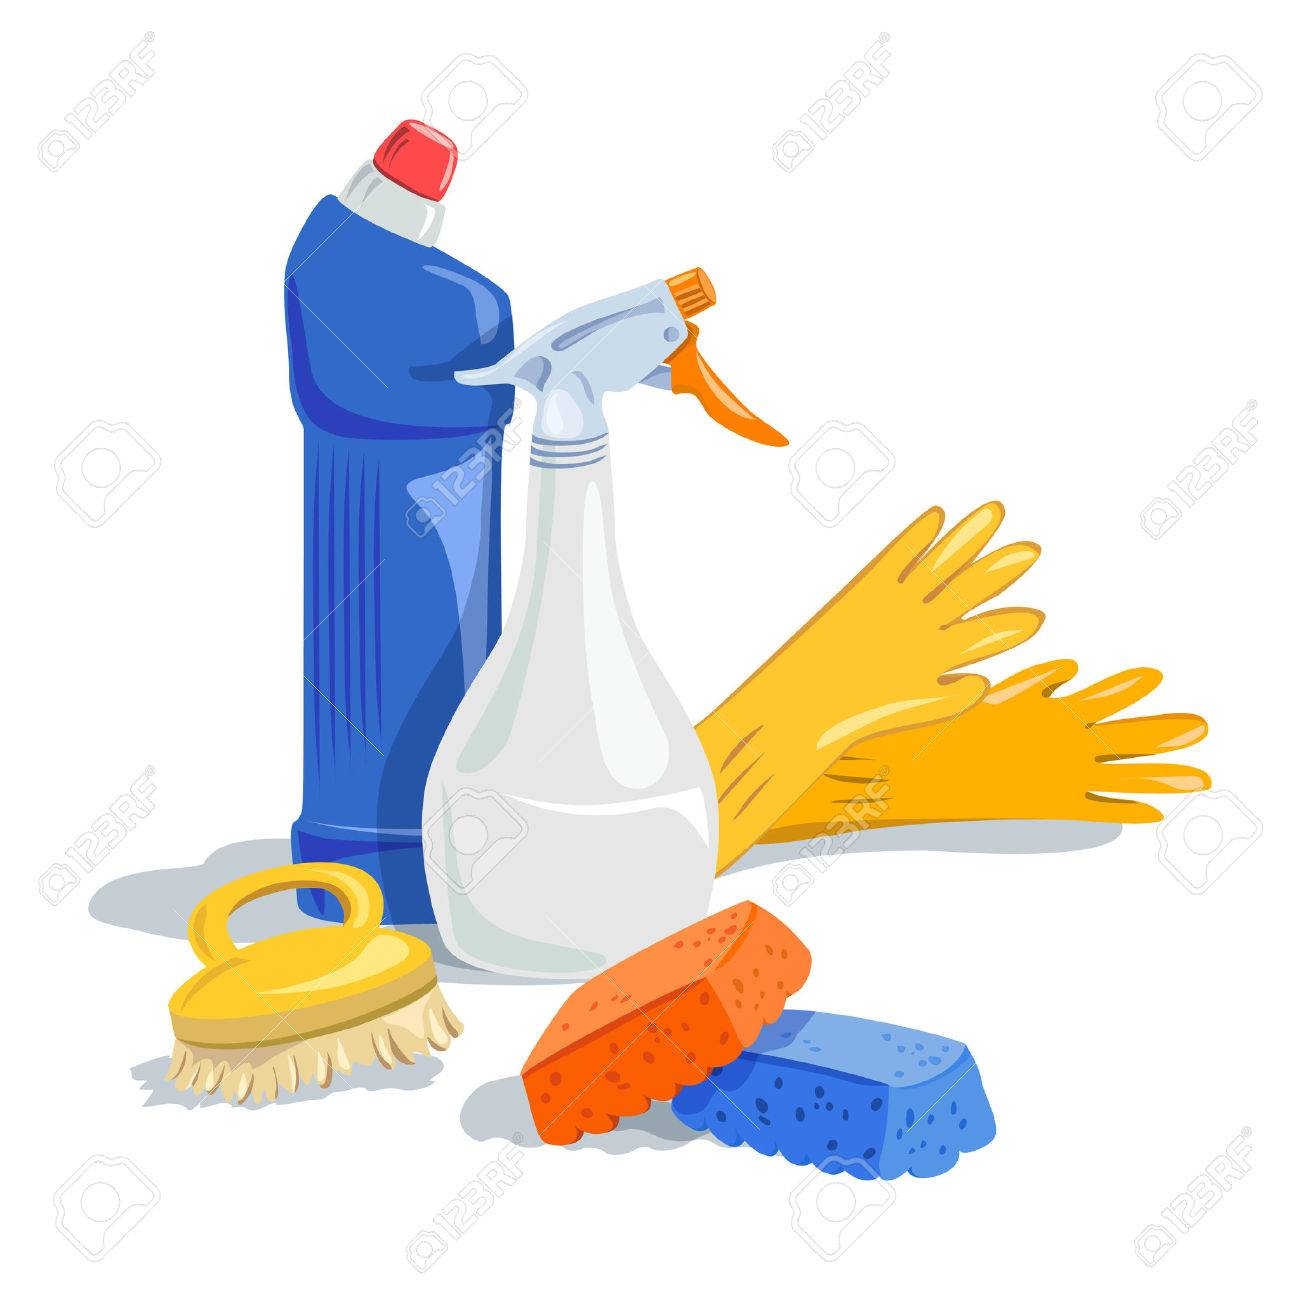 house cleaning, cleaning products. Standard-Bild - 51687220